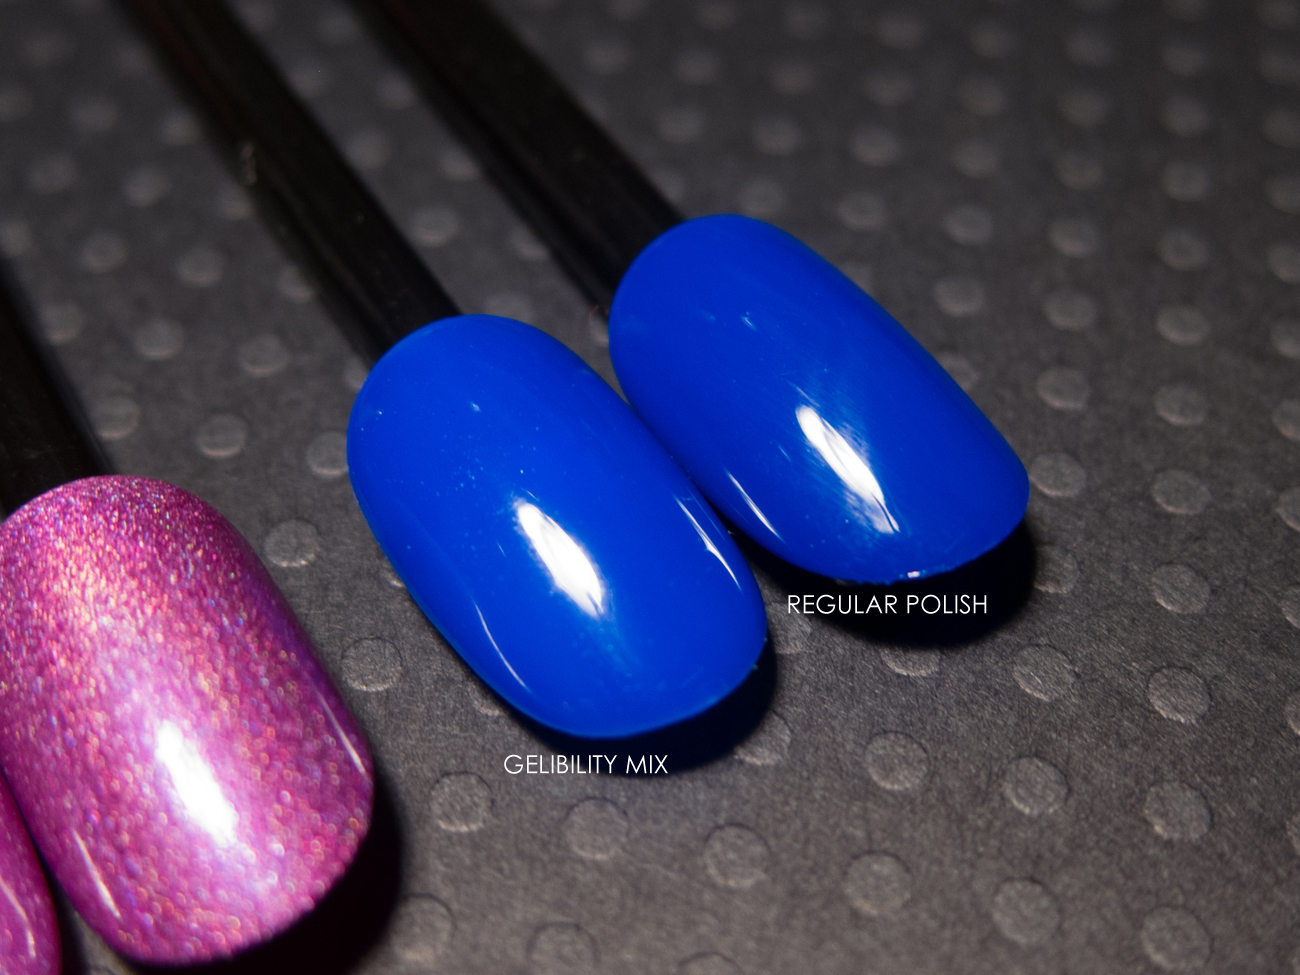 Cirque - NYFW as a gel polish via @chalkboardnails